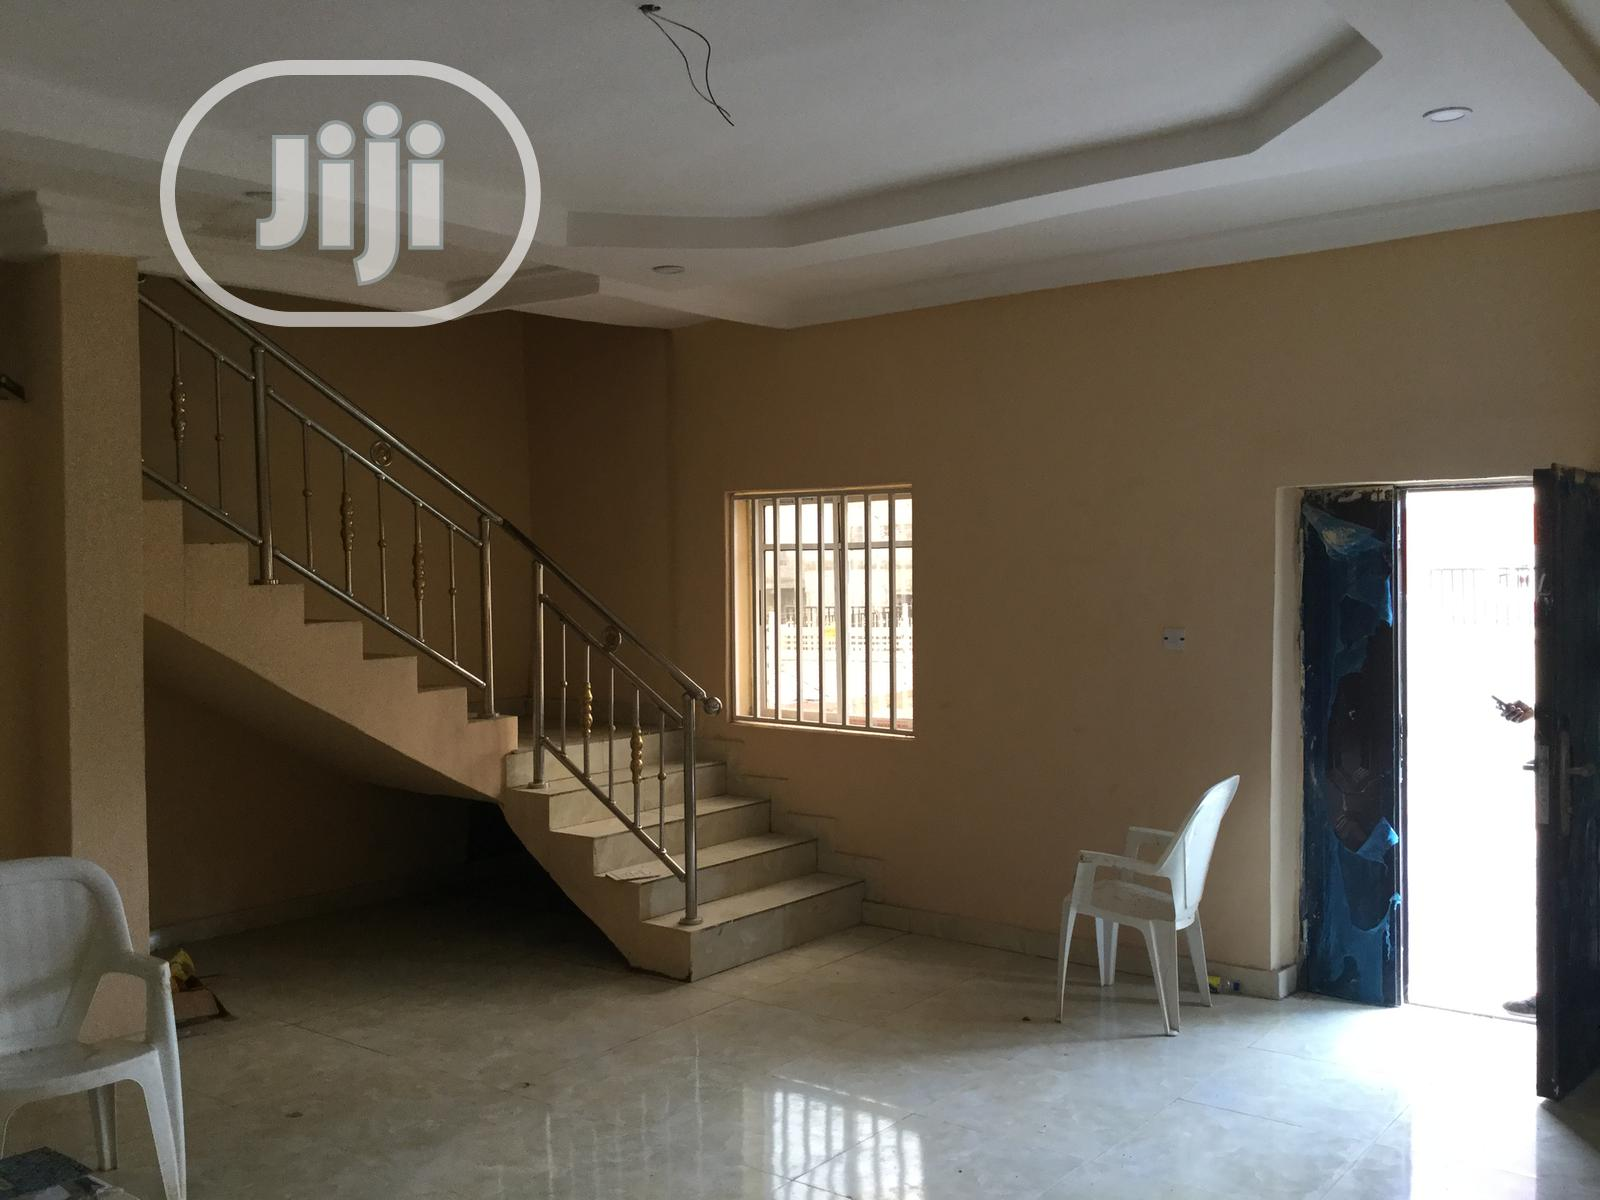 4 Bedroom Duplex Semi Detached | Houses & Apartments For Sale for sale in Kubwa, Abuja (FCT) State, Nigeria